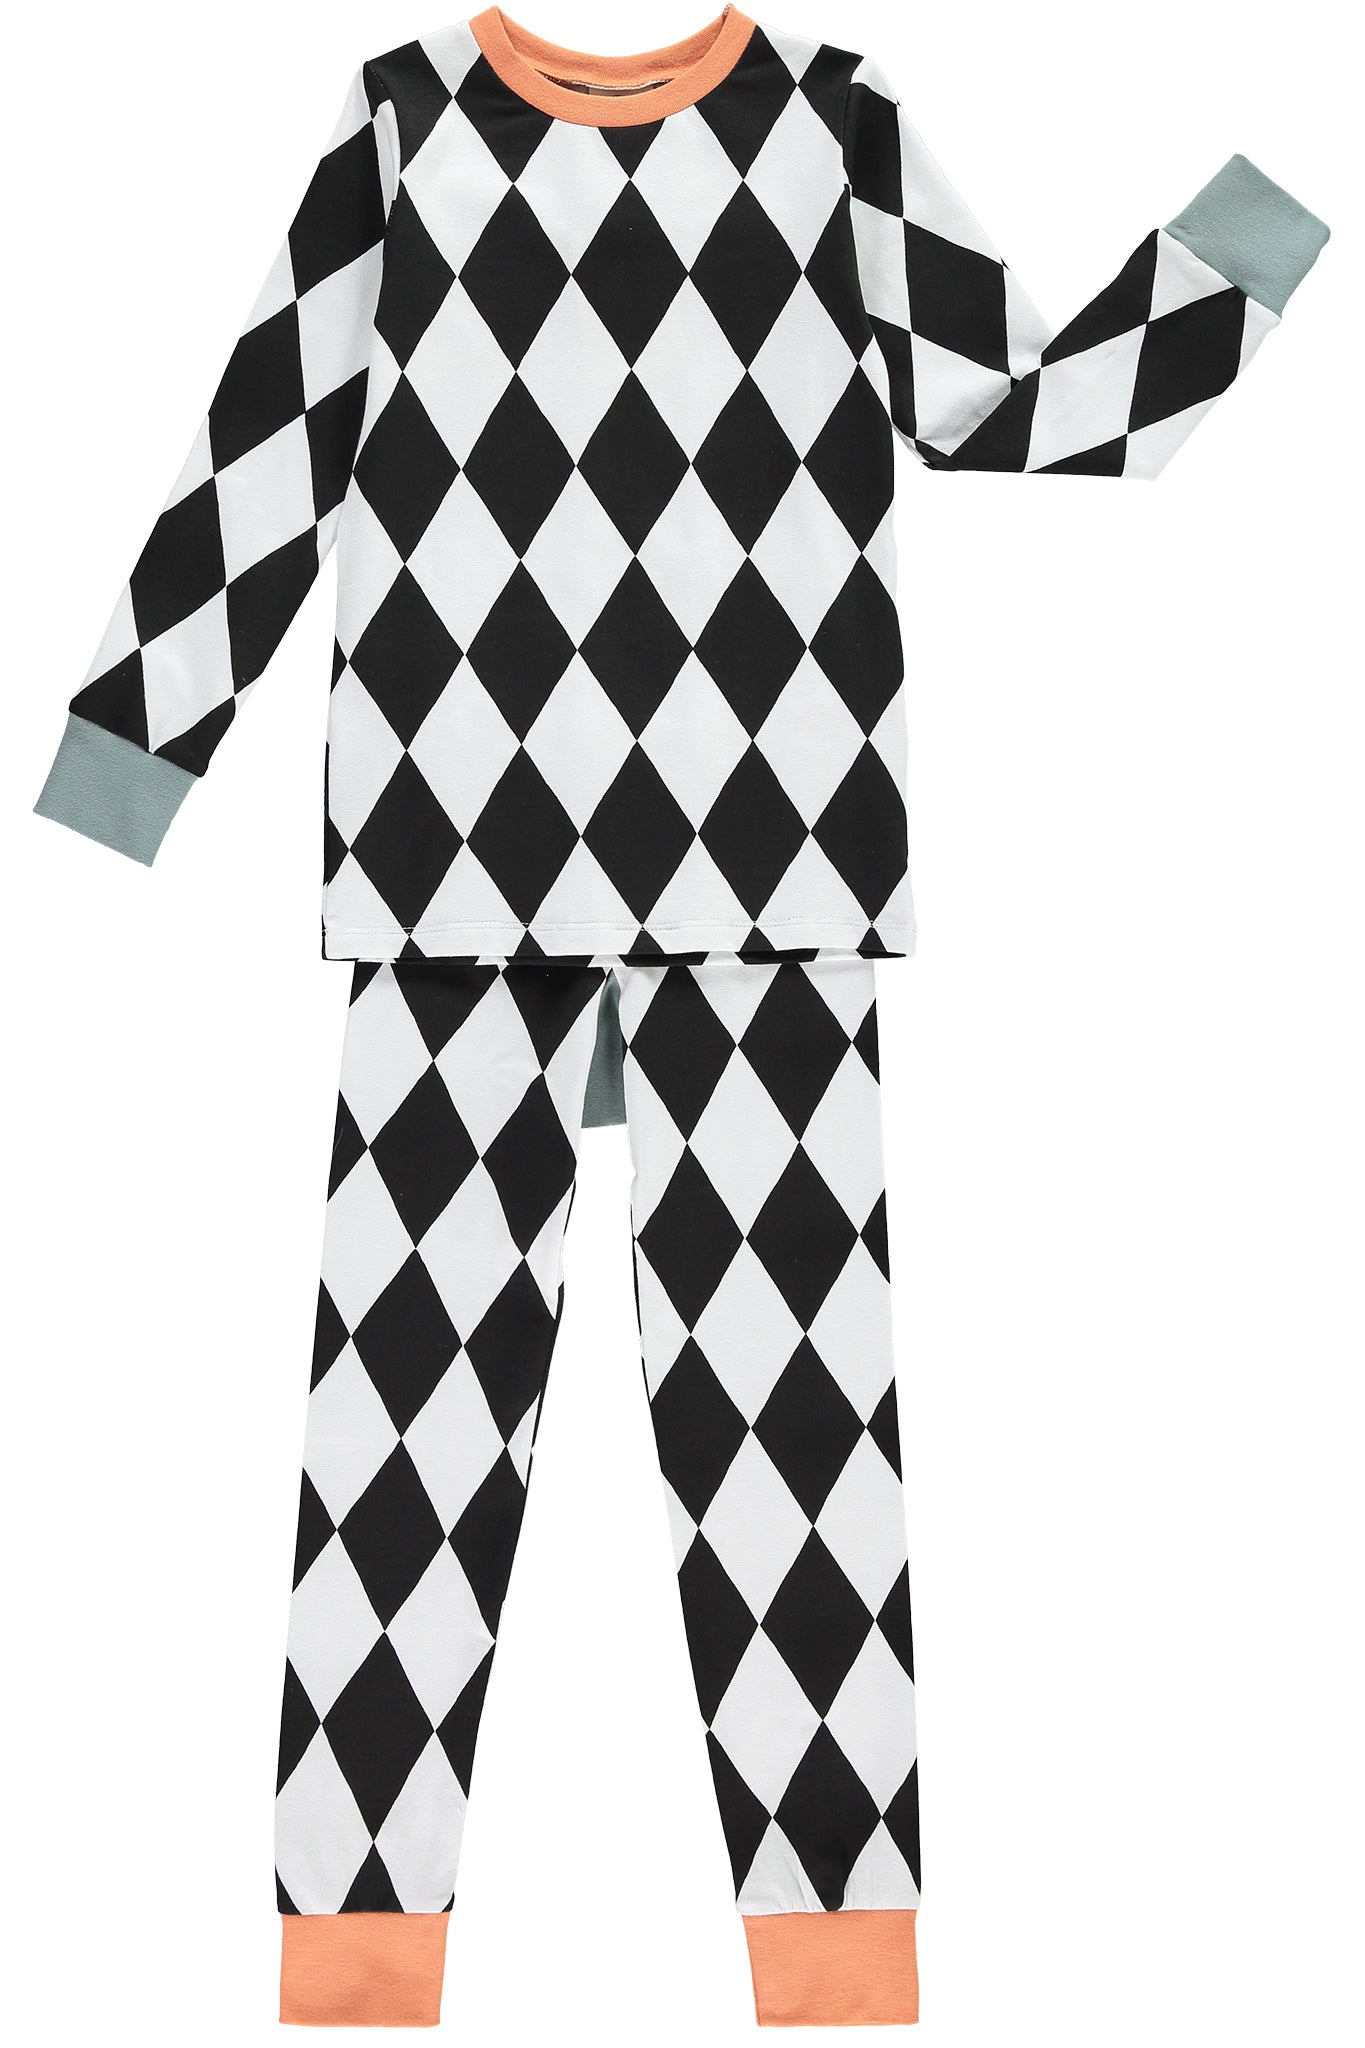 SLIM JYMS PYJAMAS - PYJAMAS - HARLEQUIN - The Bright Company